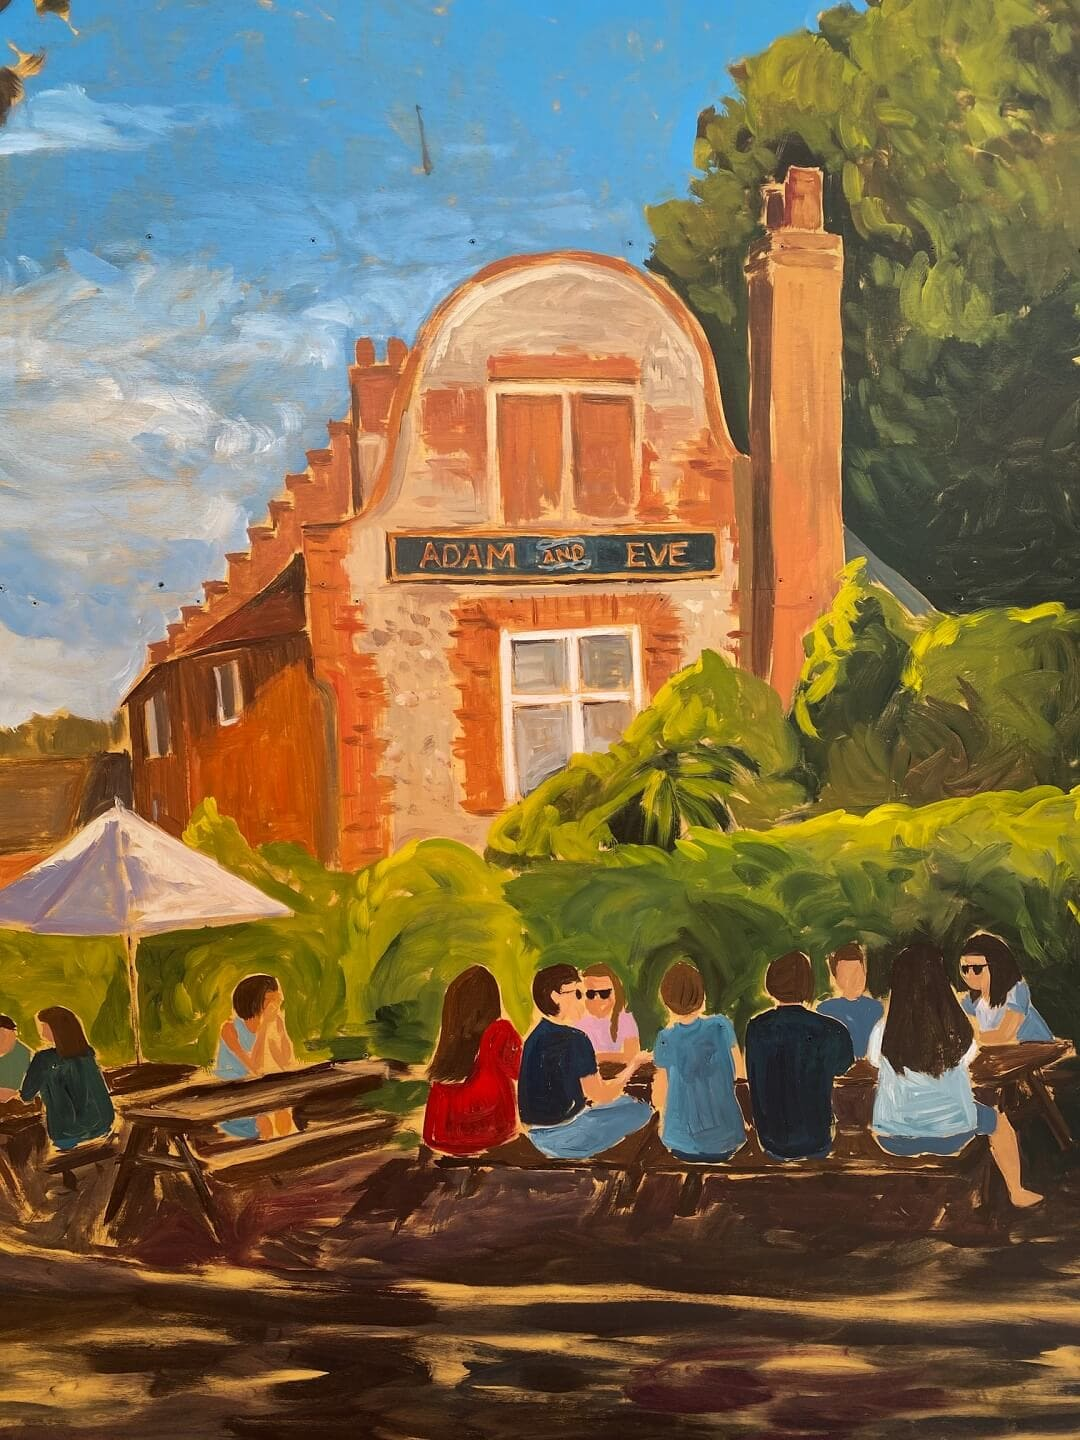 painting of the adam and eve pub